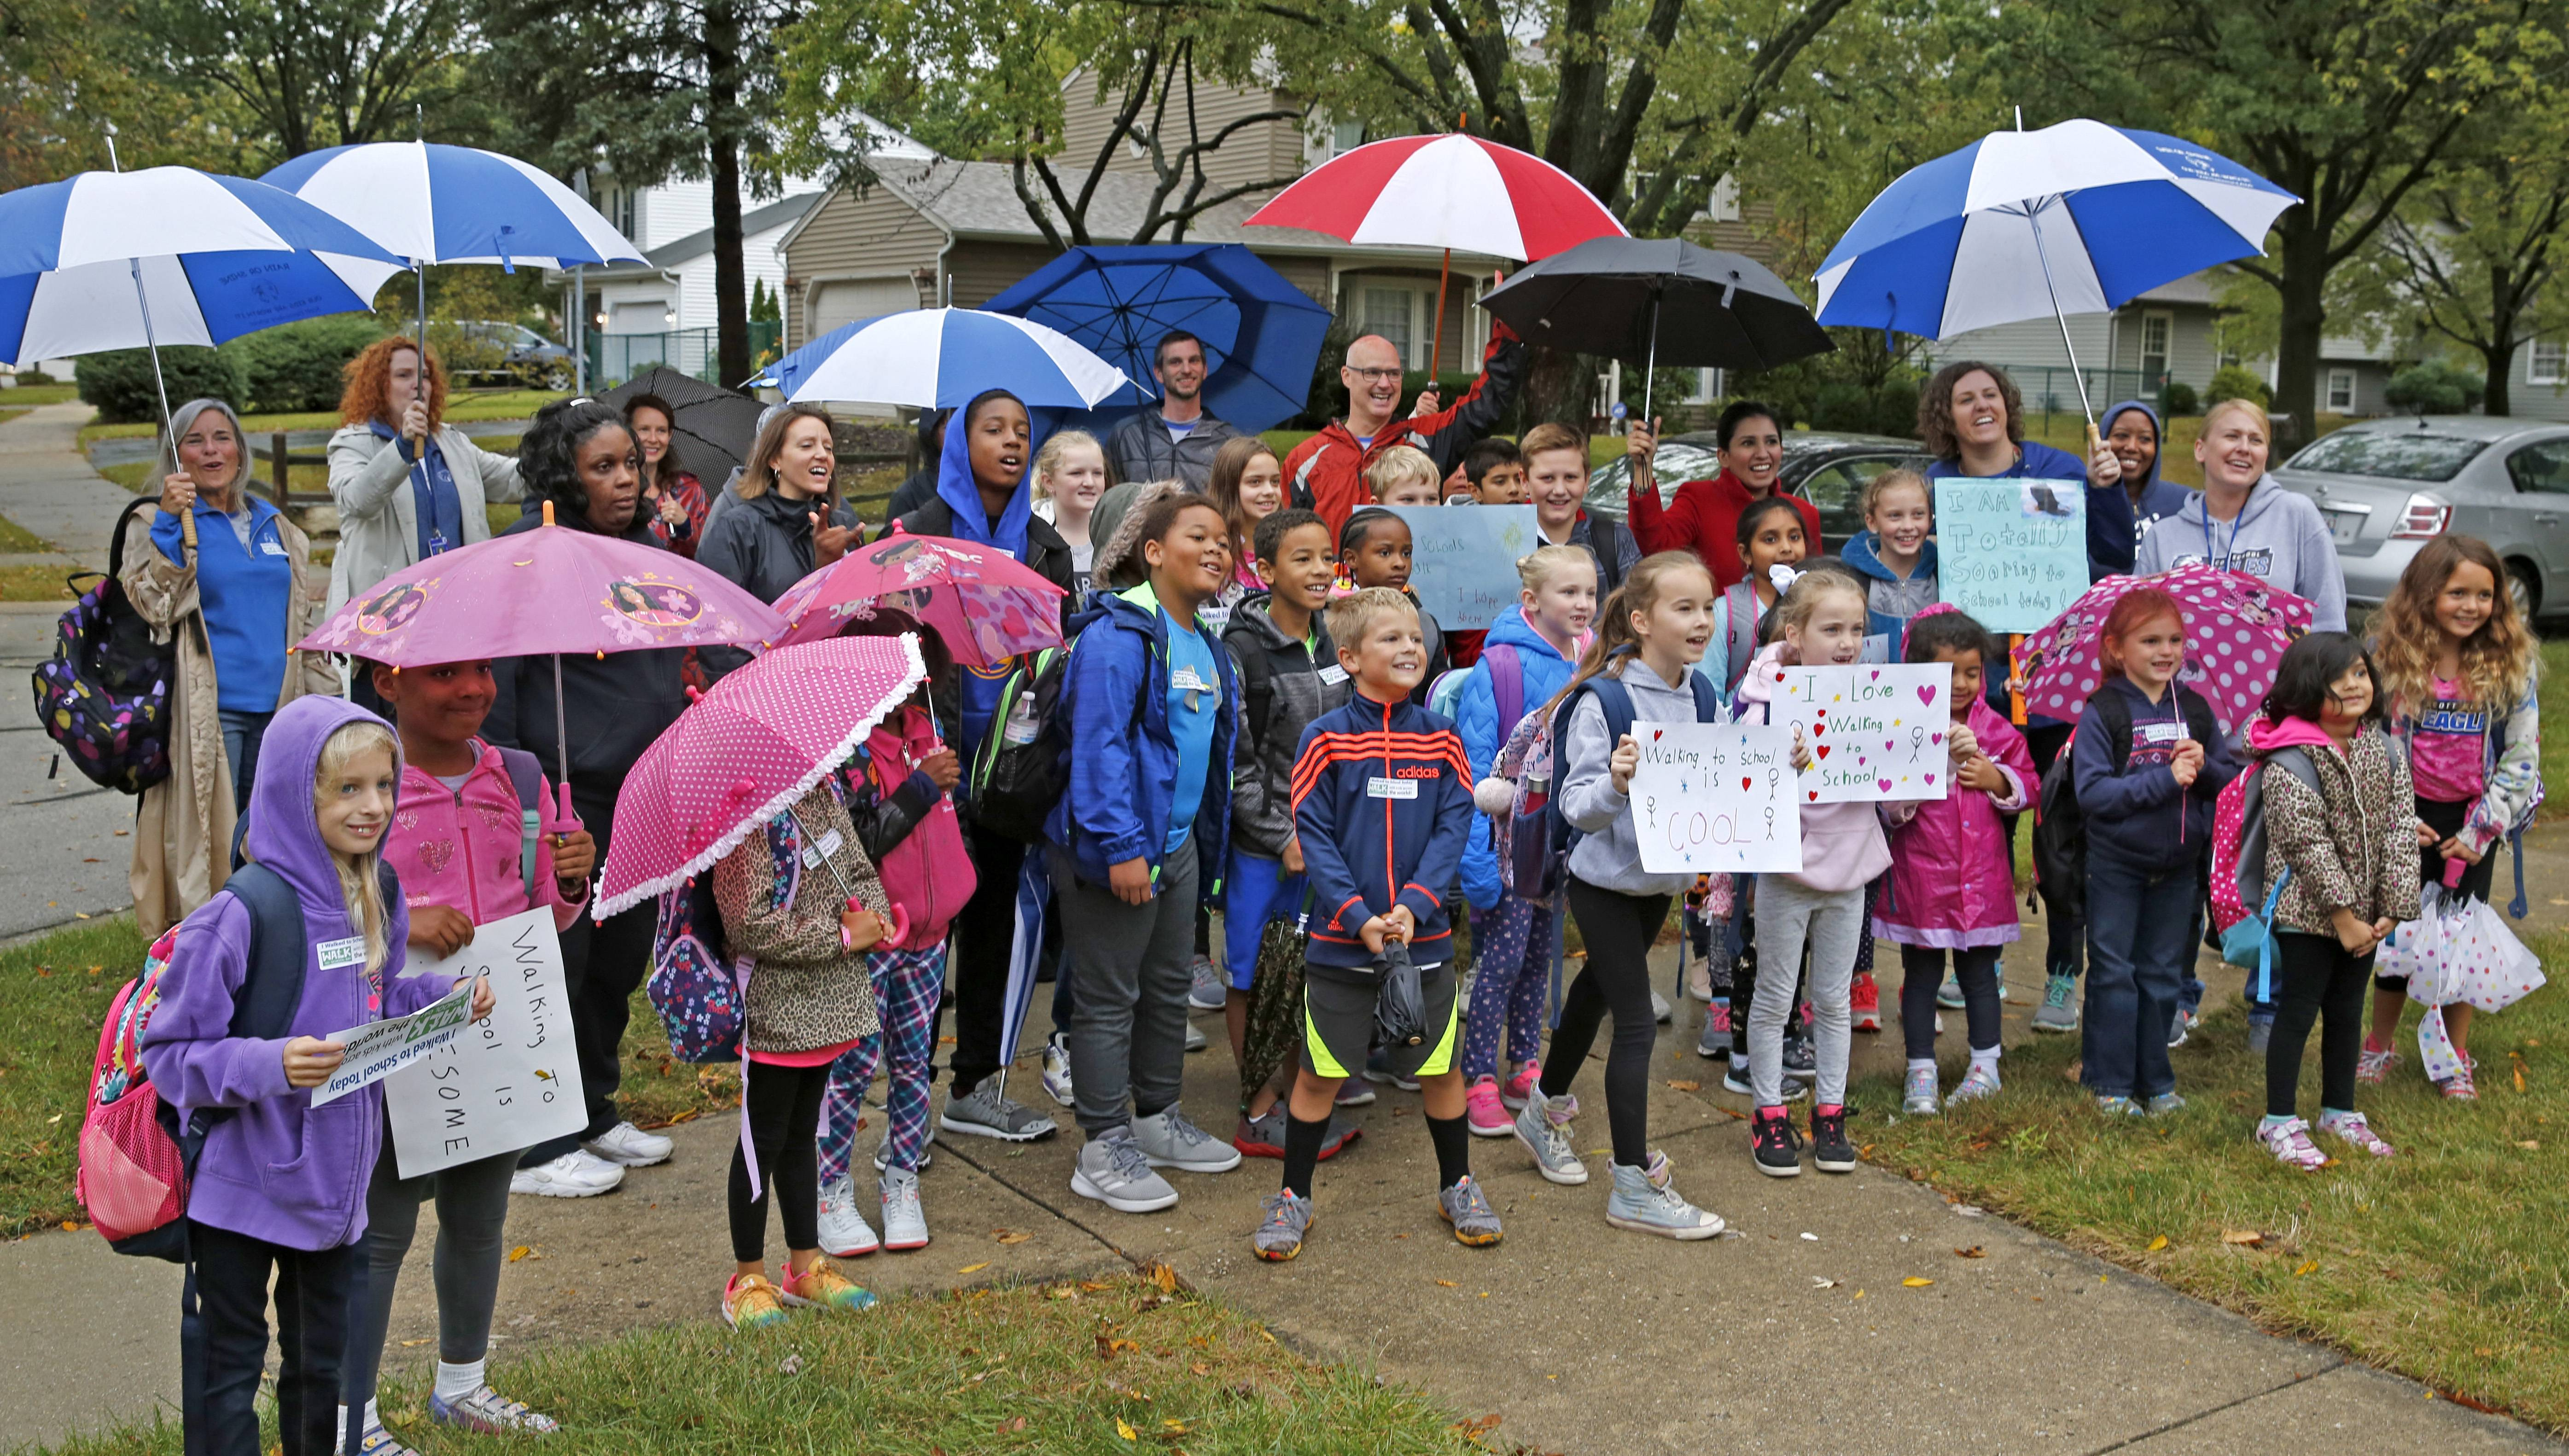 Students, parents and teachers prepare to walk from Coach Drive and Carriage Hill Road to Scott Elementary School in Naperville to celebrate National Walk to School Day. The occasion came a week late because of weather, but still fell on a rainy morning.